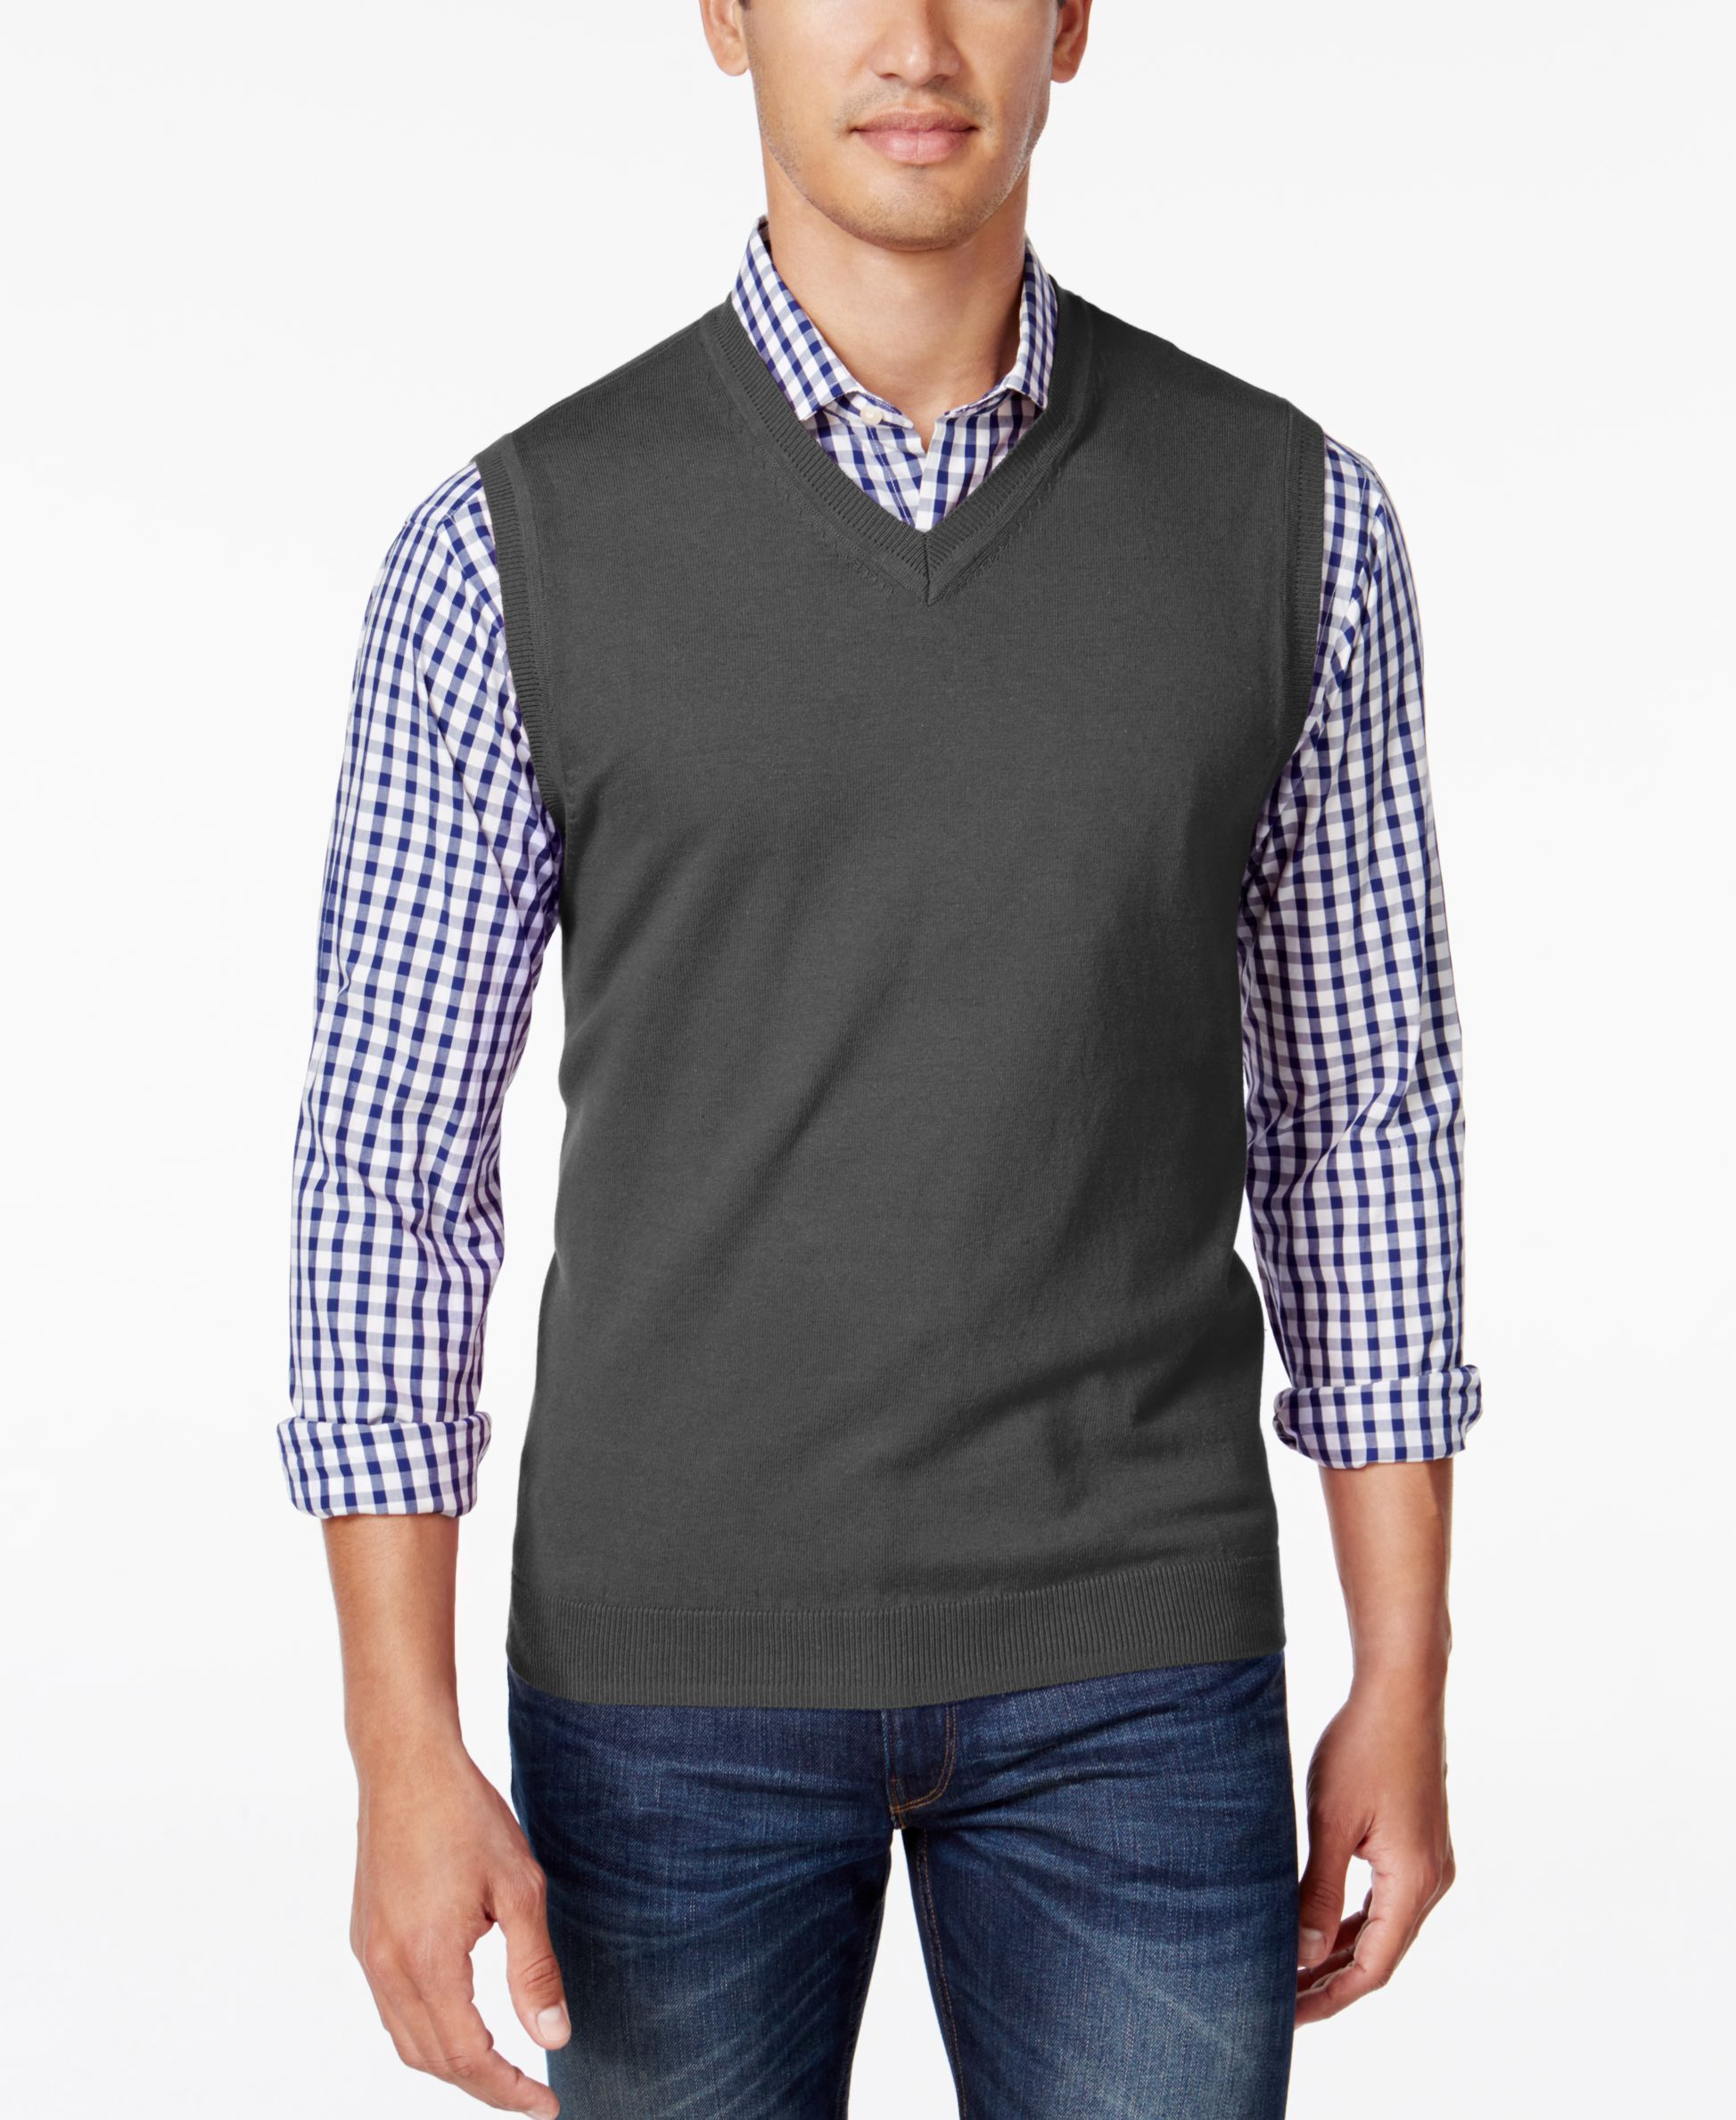 Club Room Men's Heartland V-Neck Sweater Vest, Only at Macy's ...